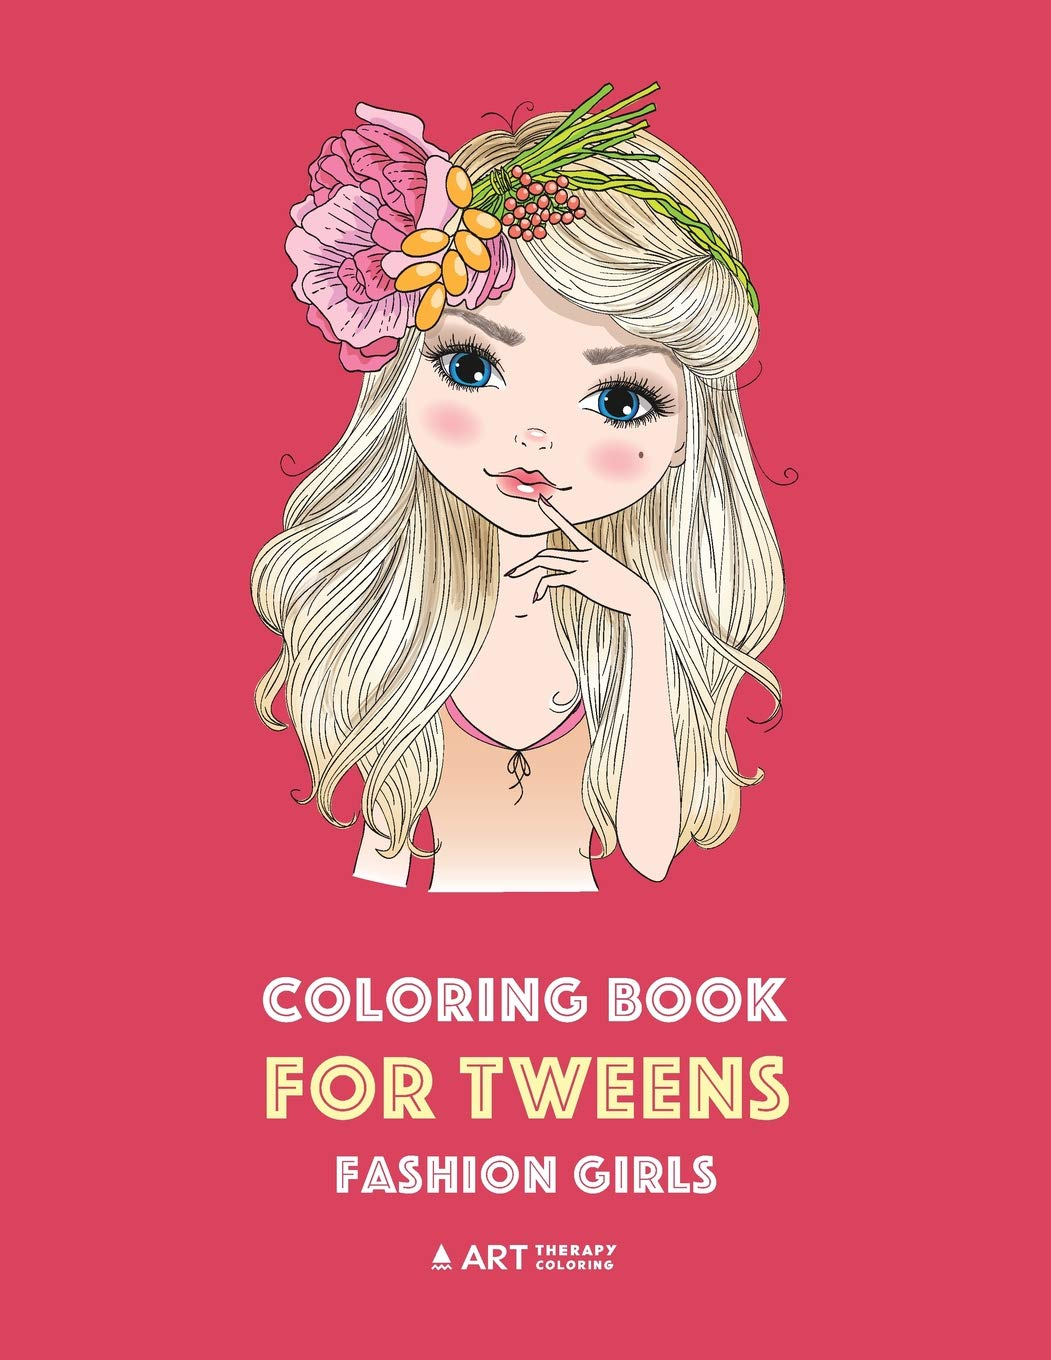 Amazon Com Coloring Book For Tweens Fashion Girls Fashion Coloring Book Fashion Style Clothing Cool Cute Designs Coloring Book For Girls Of All Ages Younger Girls Teens Teenagers Ages 8 12 12 16 9781641261593 Art